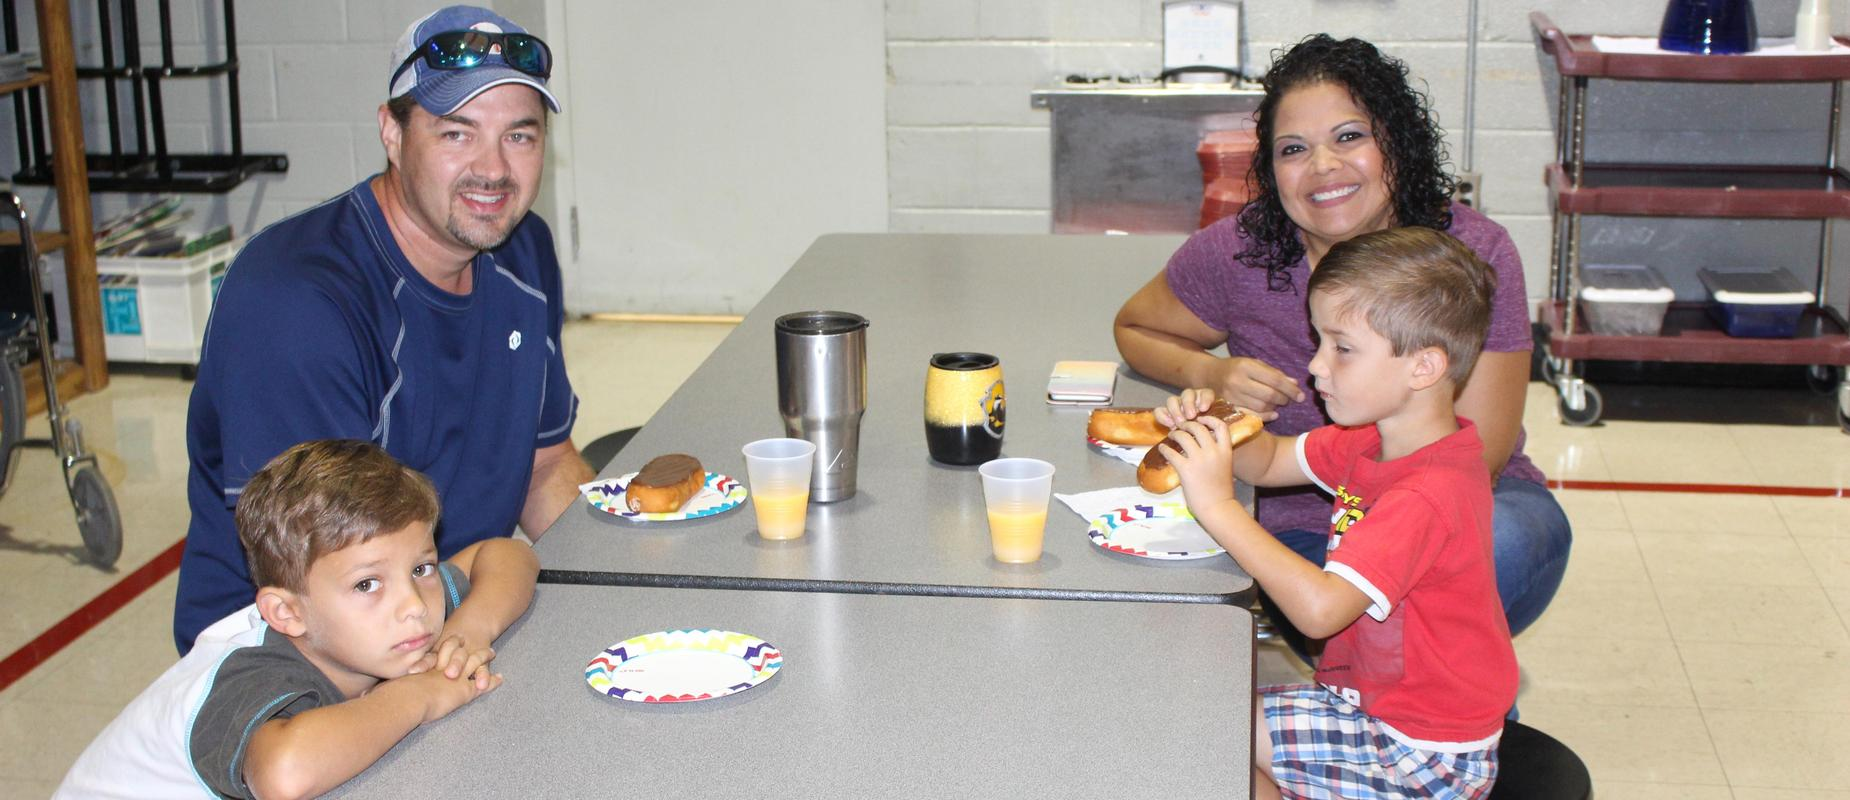 parents eating donuts with students